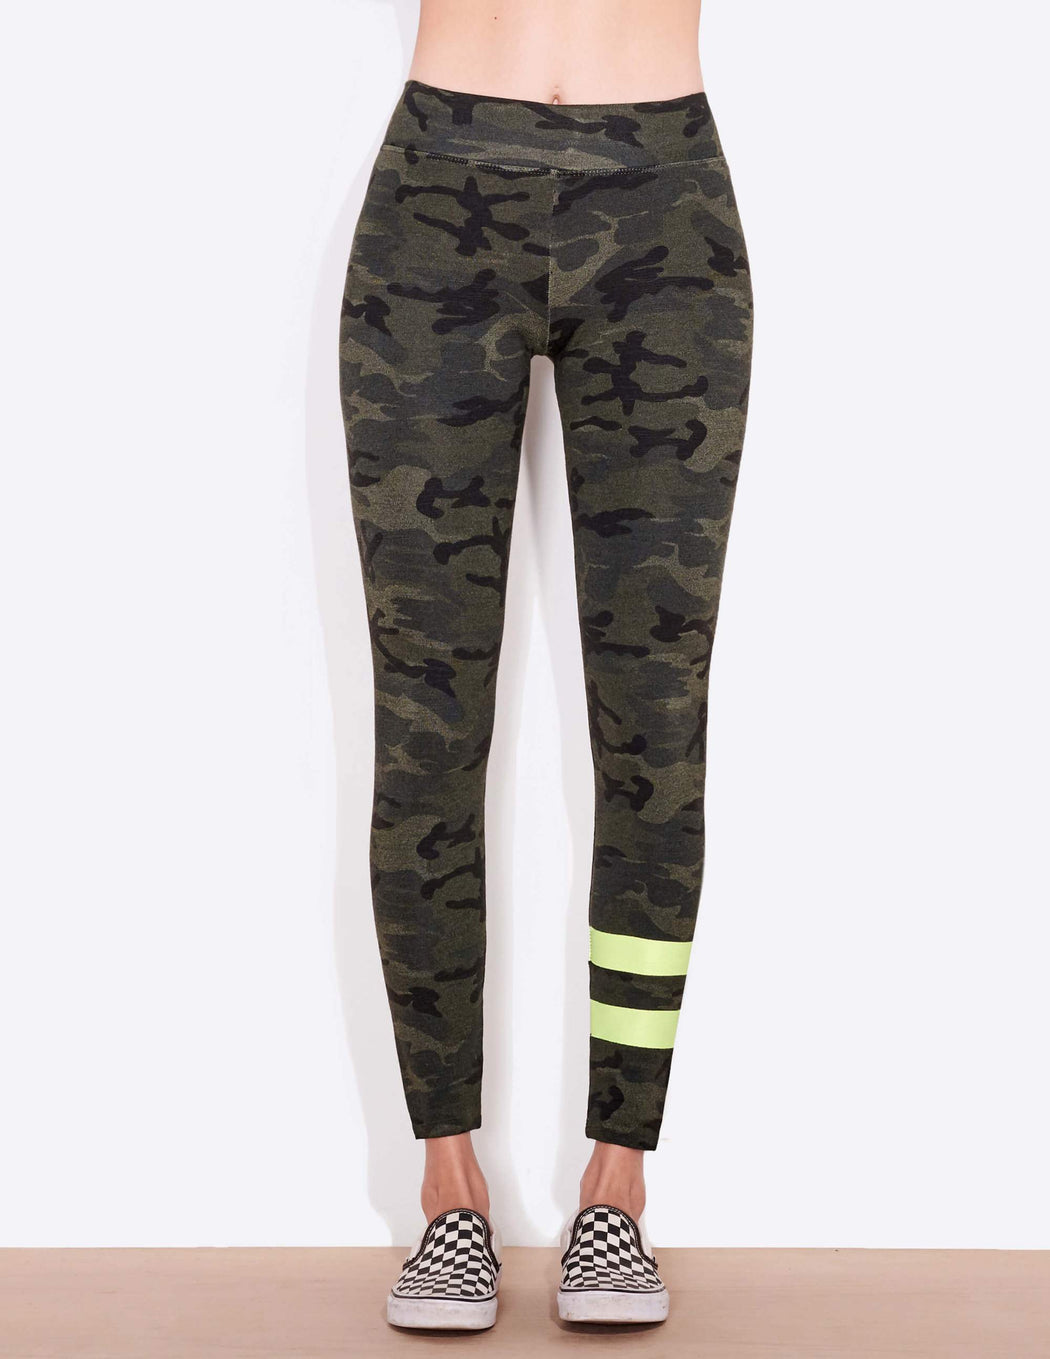 Sundry Camo Yoga Leggings